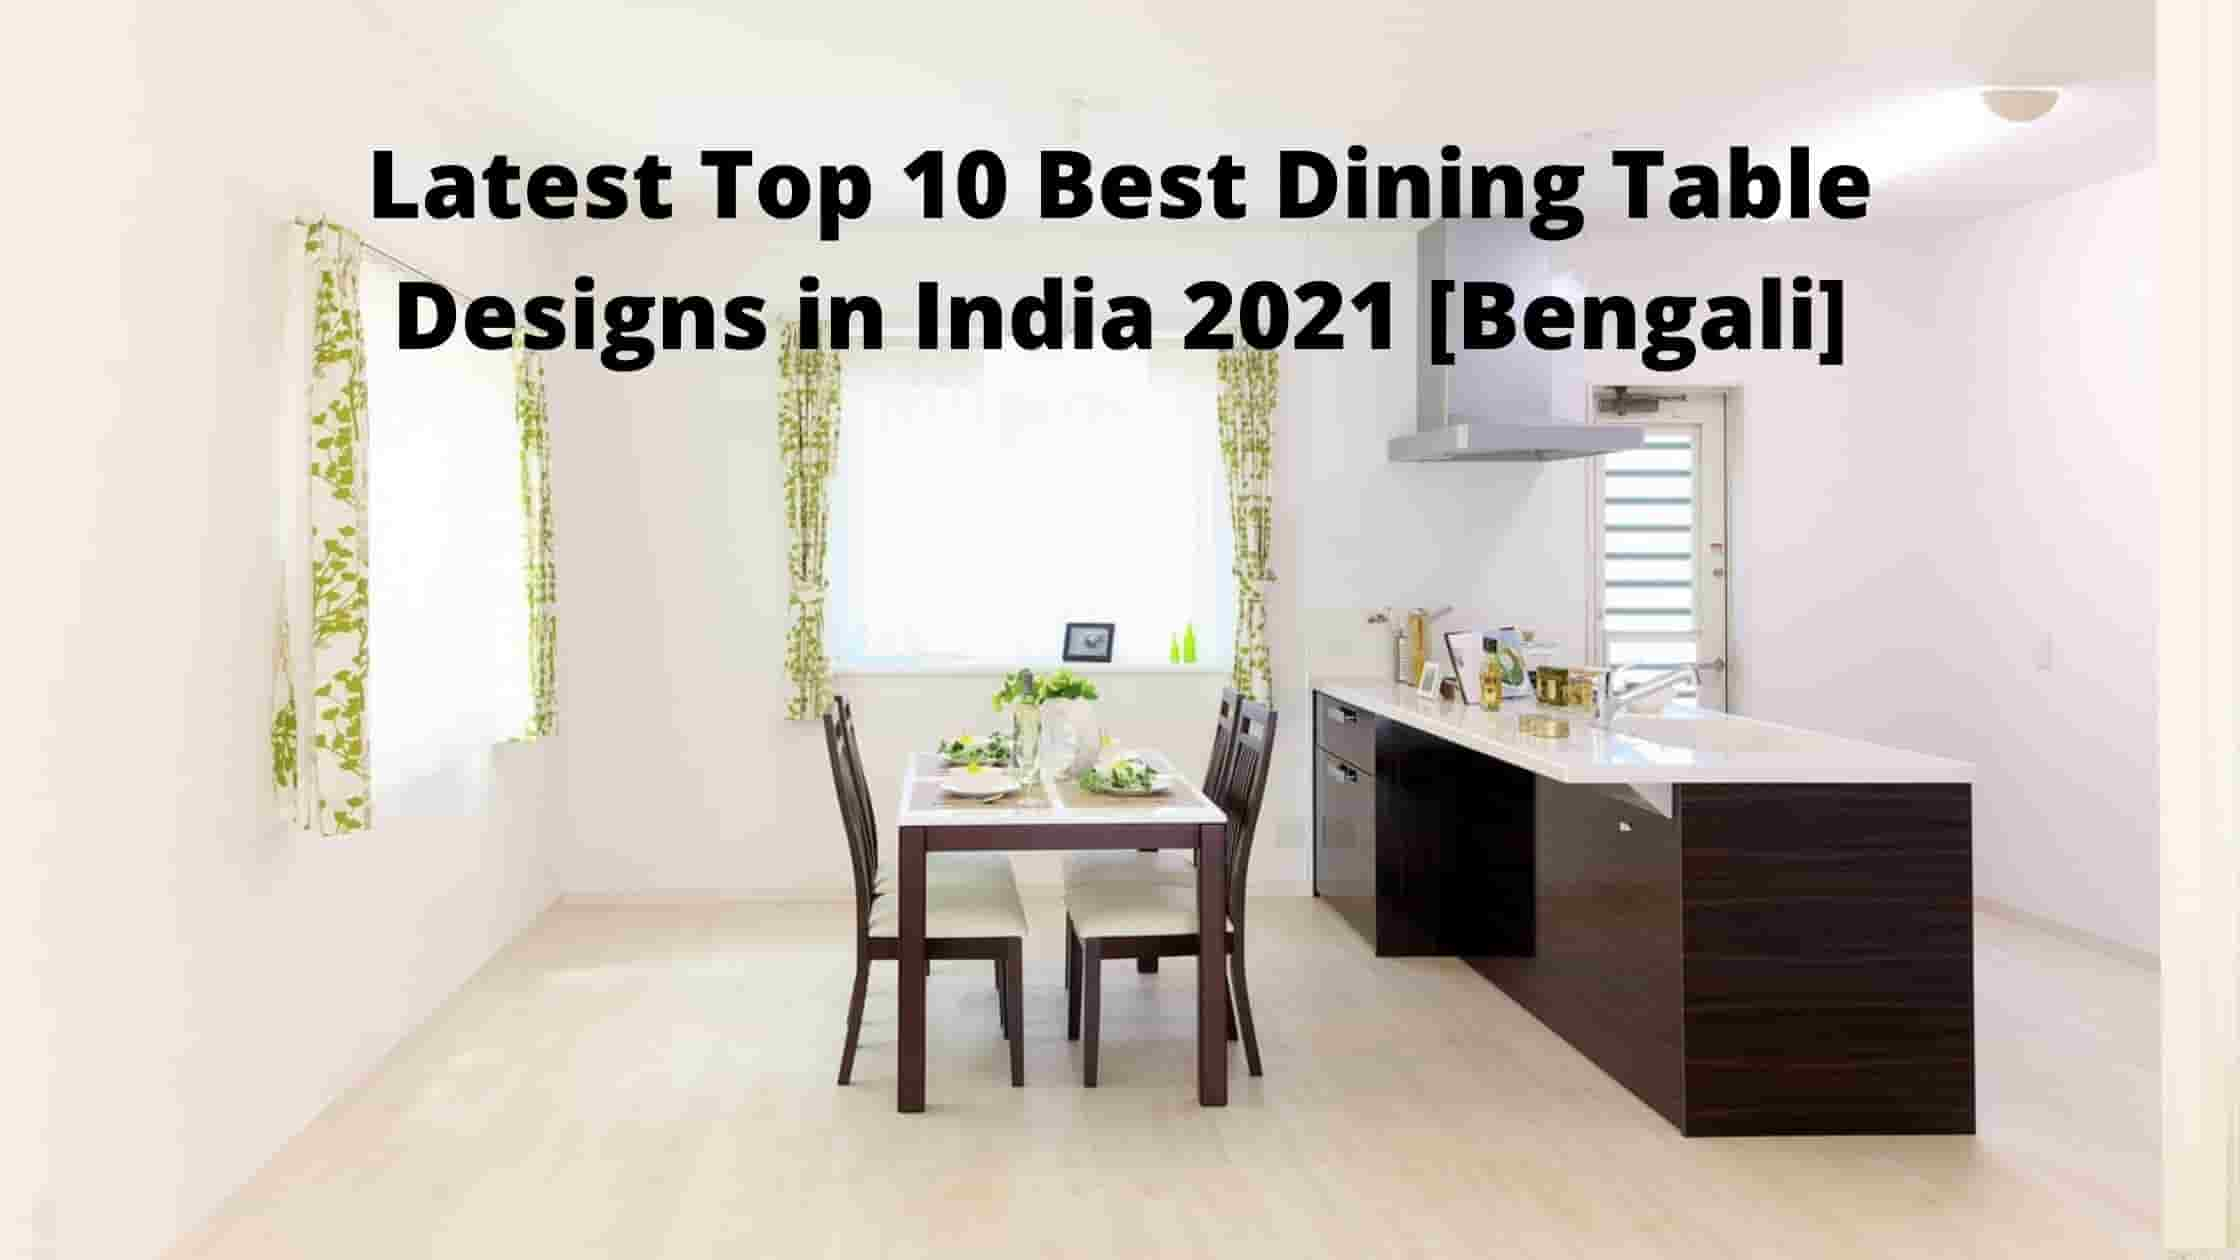 Latest Top 10 Best Dining Table Designs in India 2021 [Bengali]